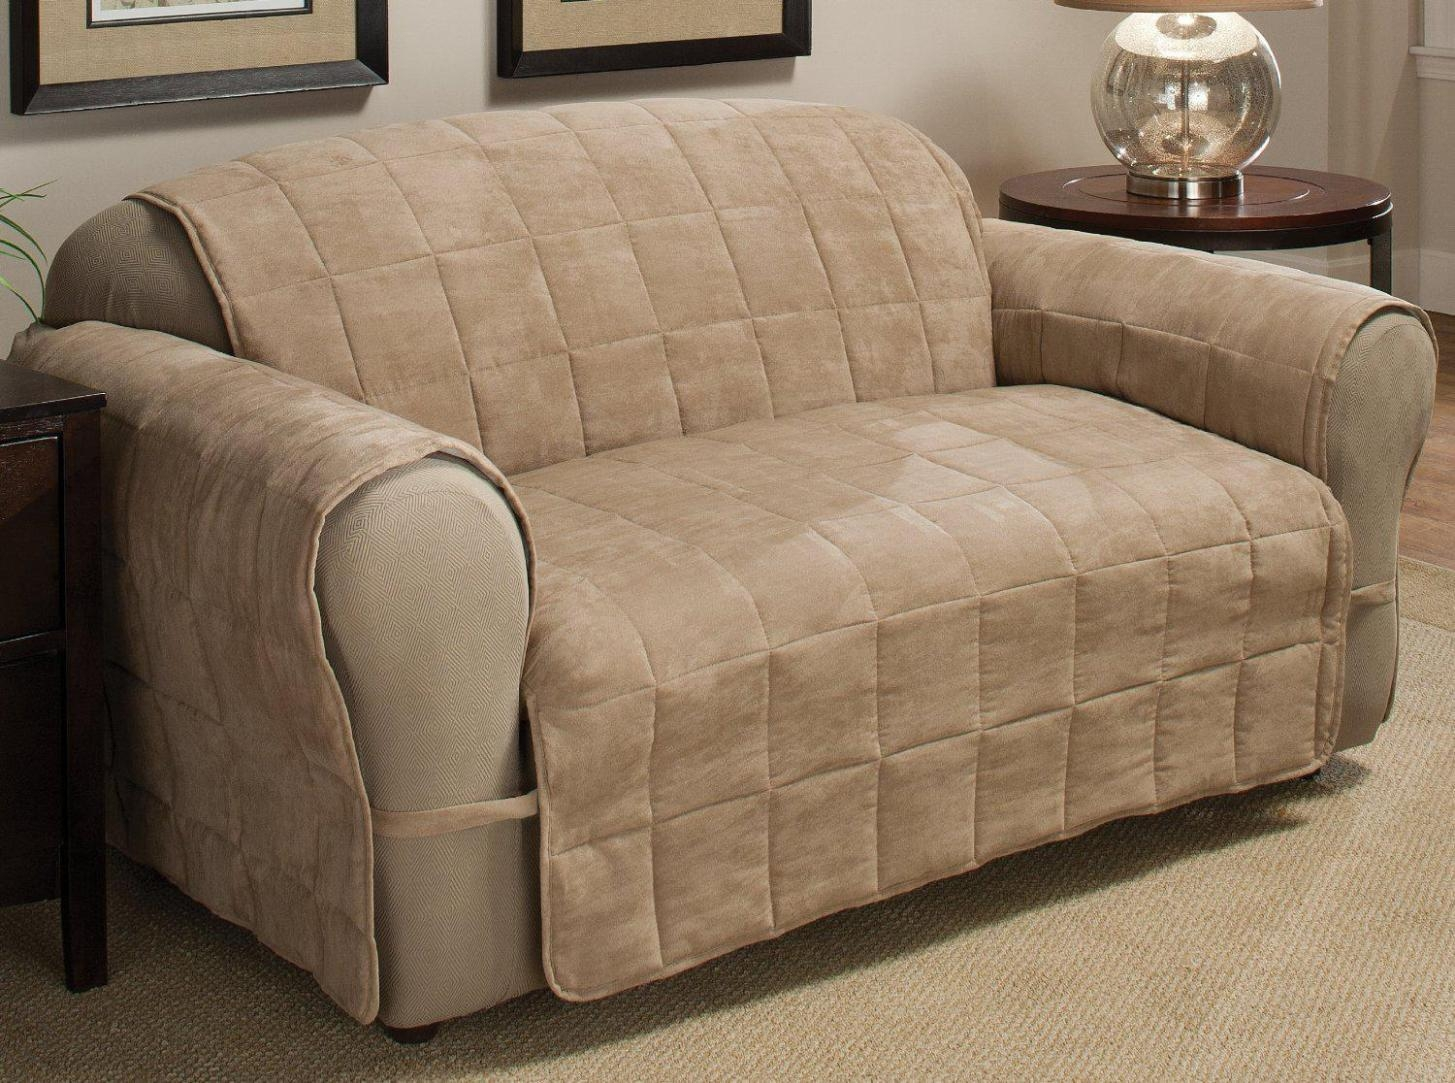 Furniture & Rug: Recliner Covers | Lazy Boy Recliner Cover | Slip Throughout Sofa And Chair Slipcovers (Image 6 of 20)